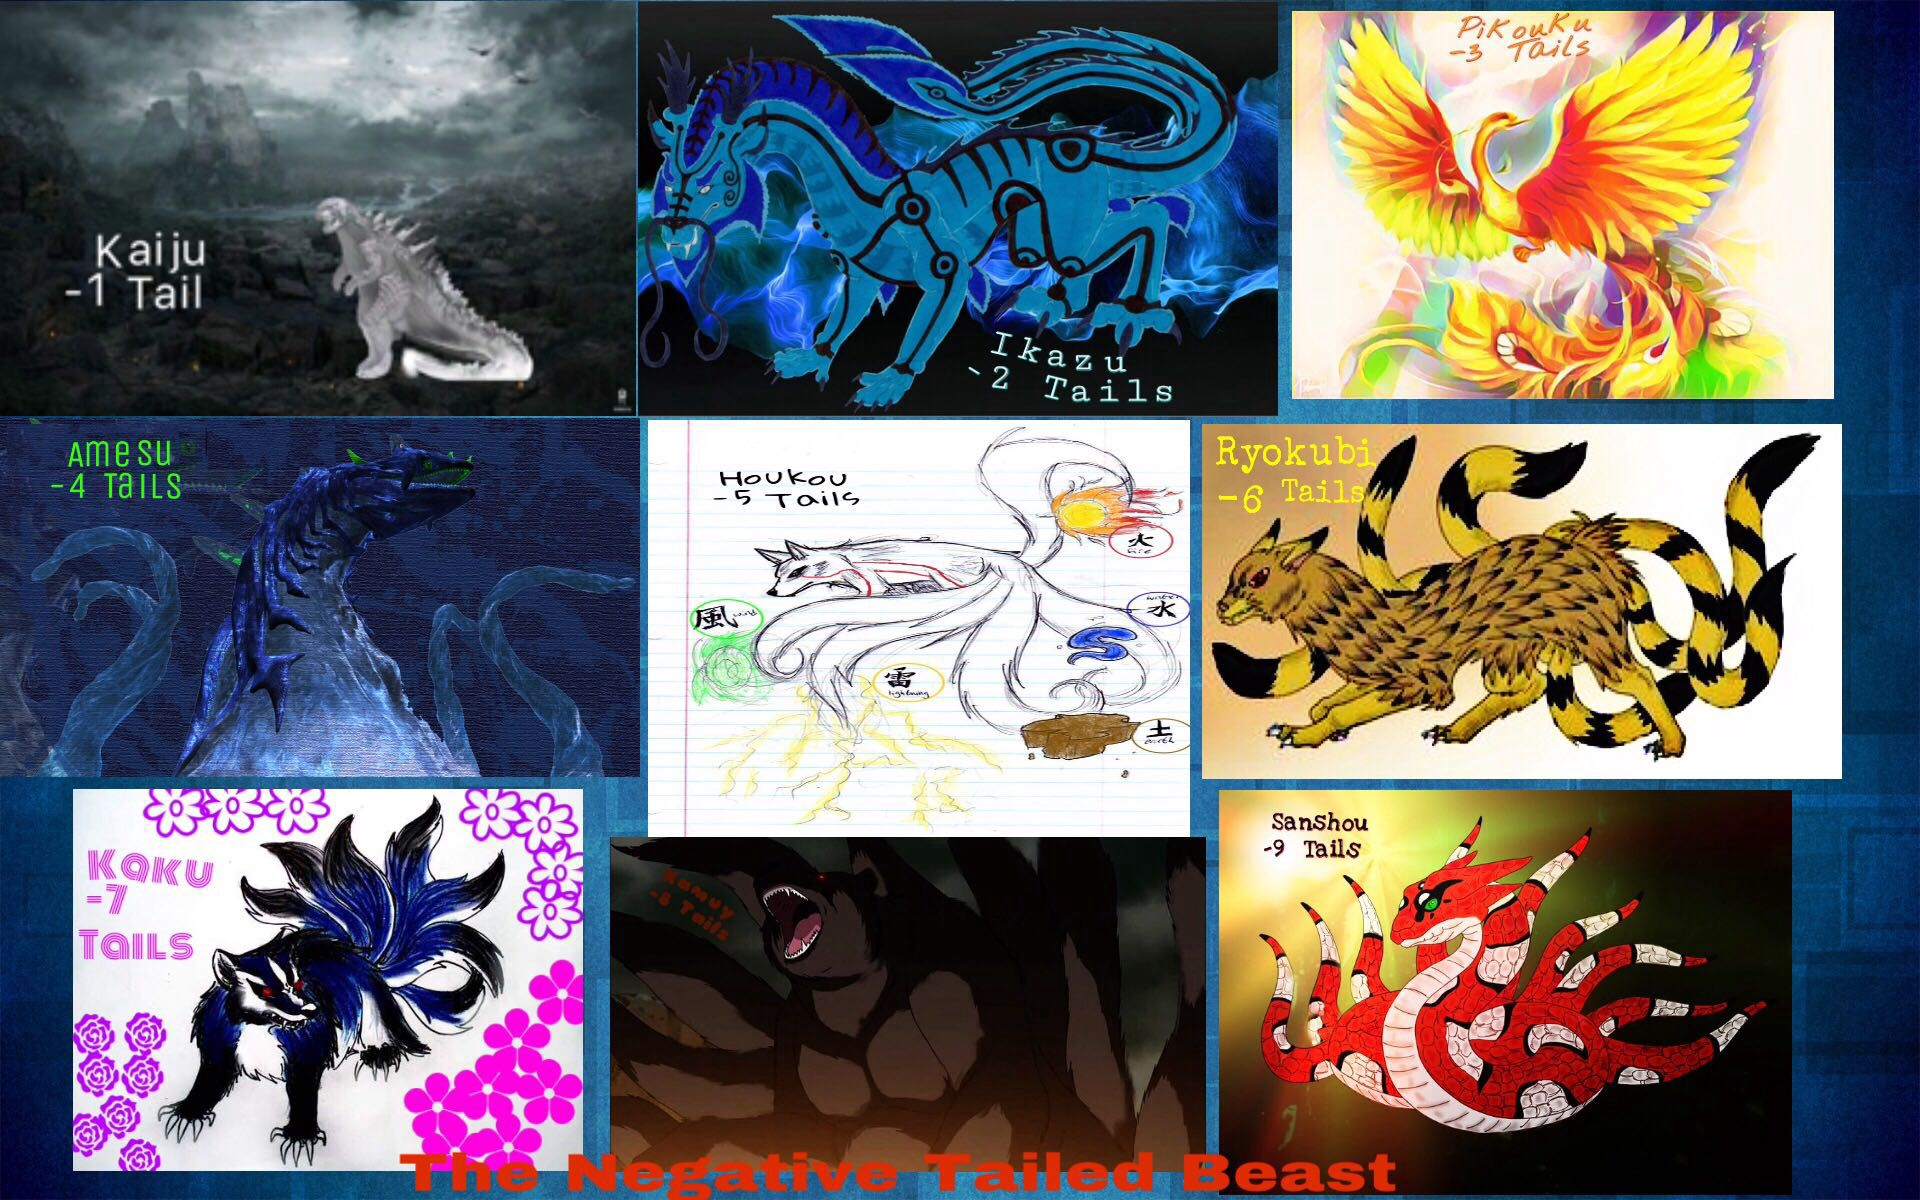 0 Tails Naruto the negative tailed beast and jinchuuriki - the beginning